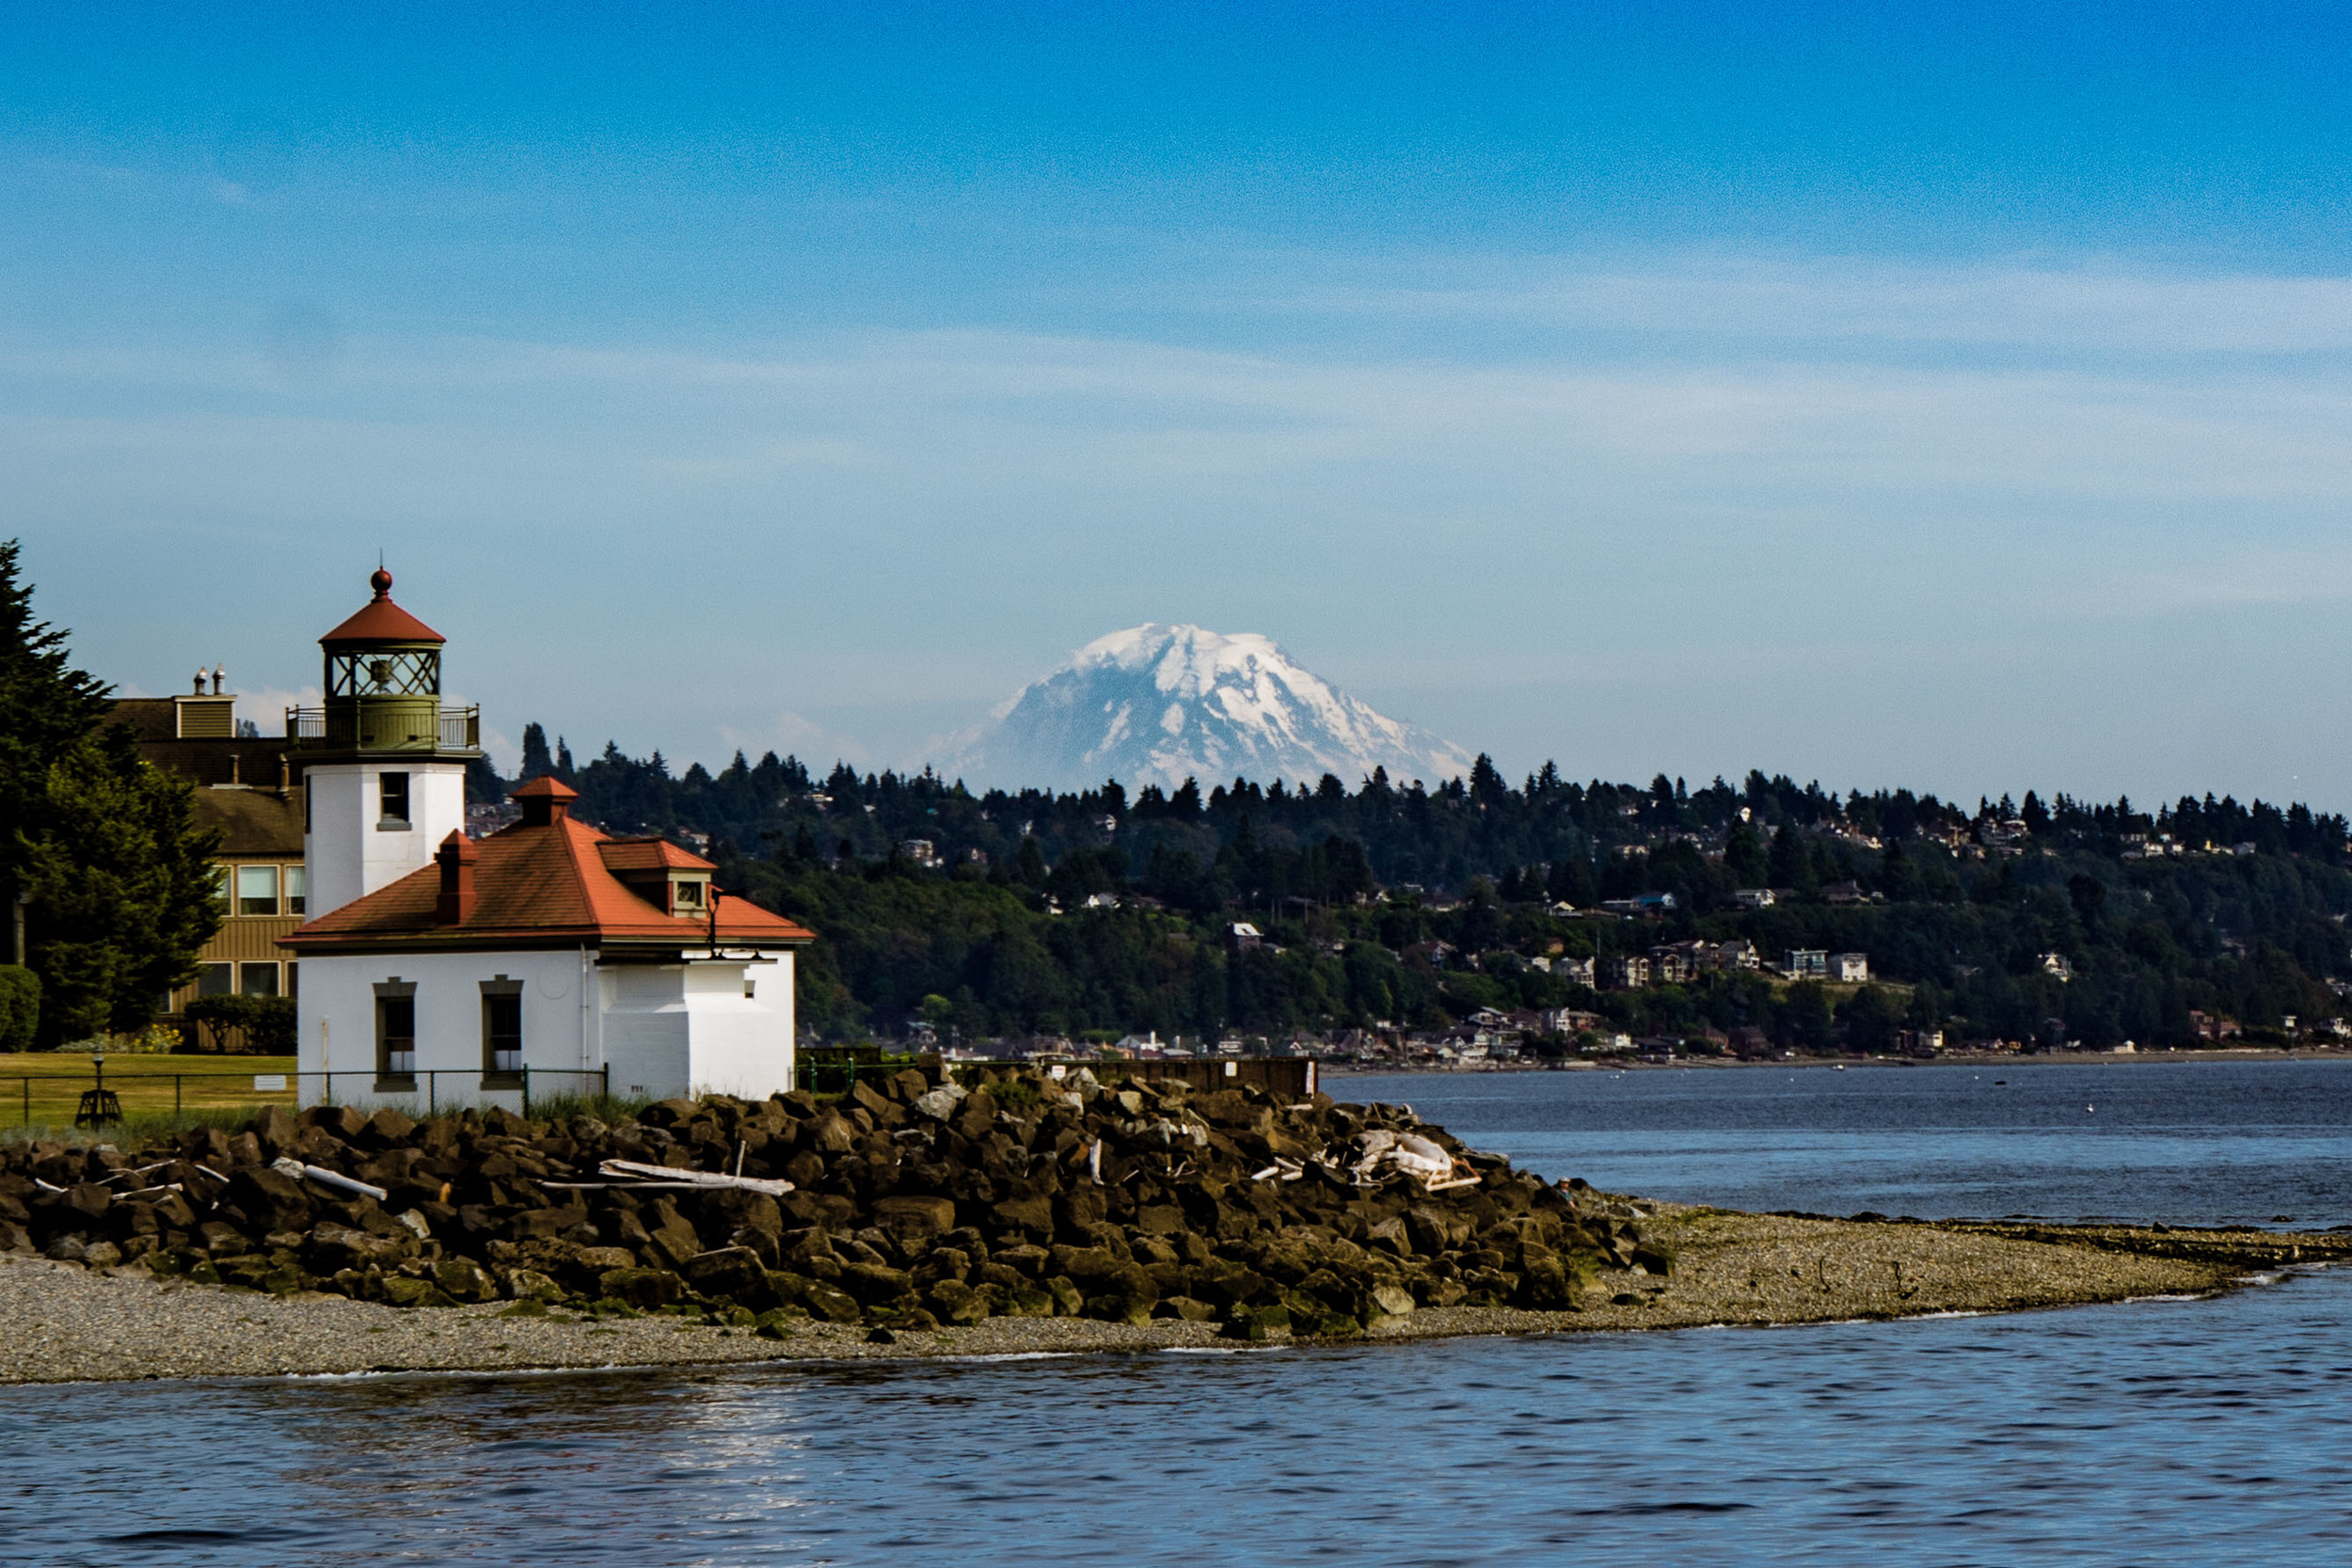 Lighthouse and Mt. Rainier from Puget Sound. Mt Rainier was STUNNING, 70+ miles away.